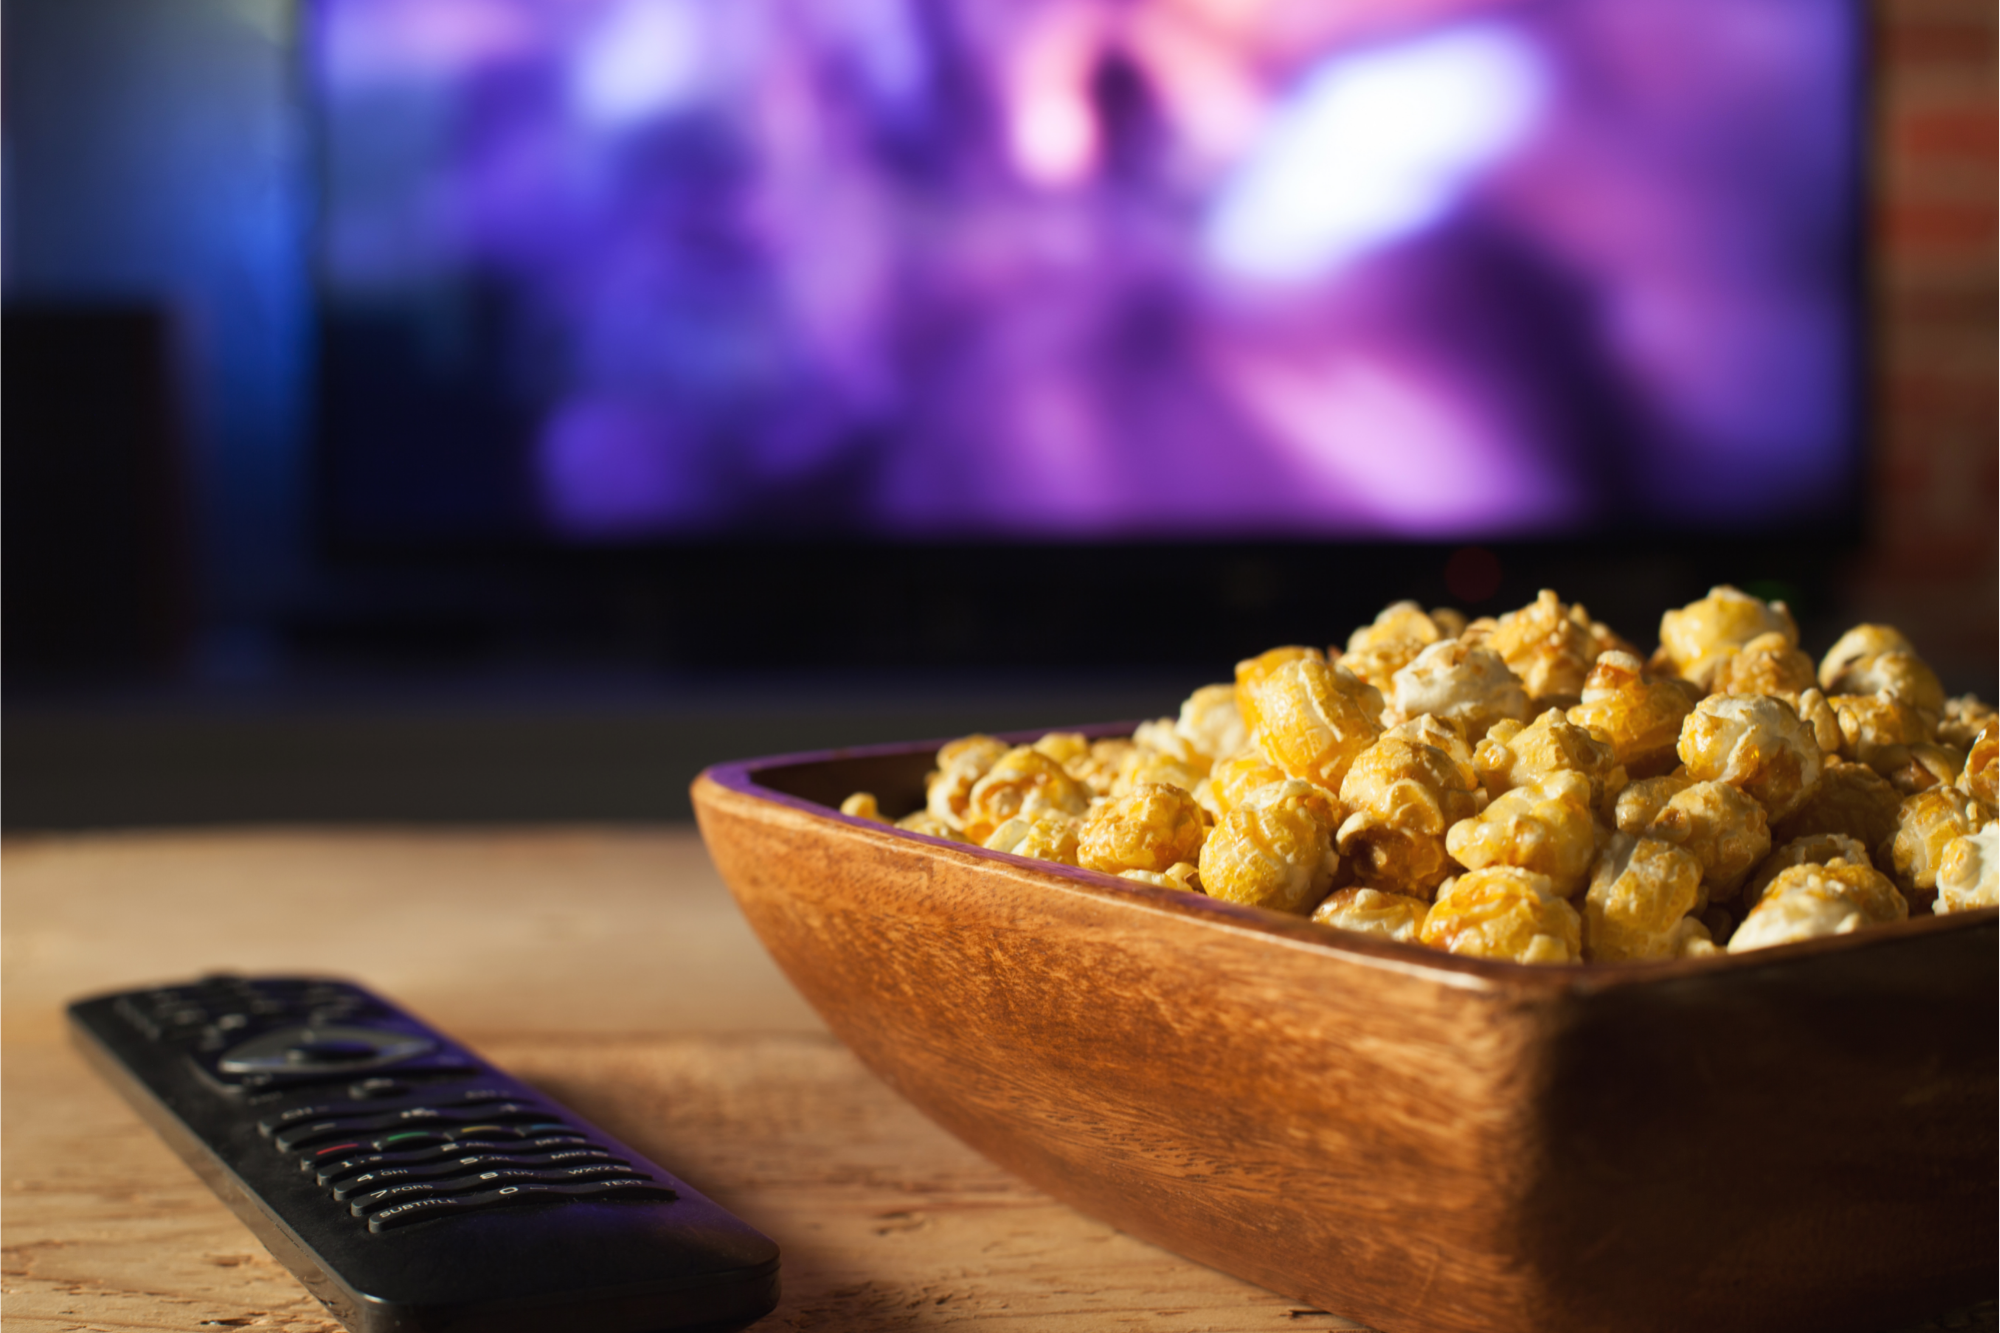 How to Embrace Nighttime Snacking Without Guilt